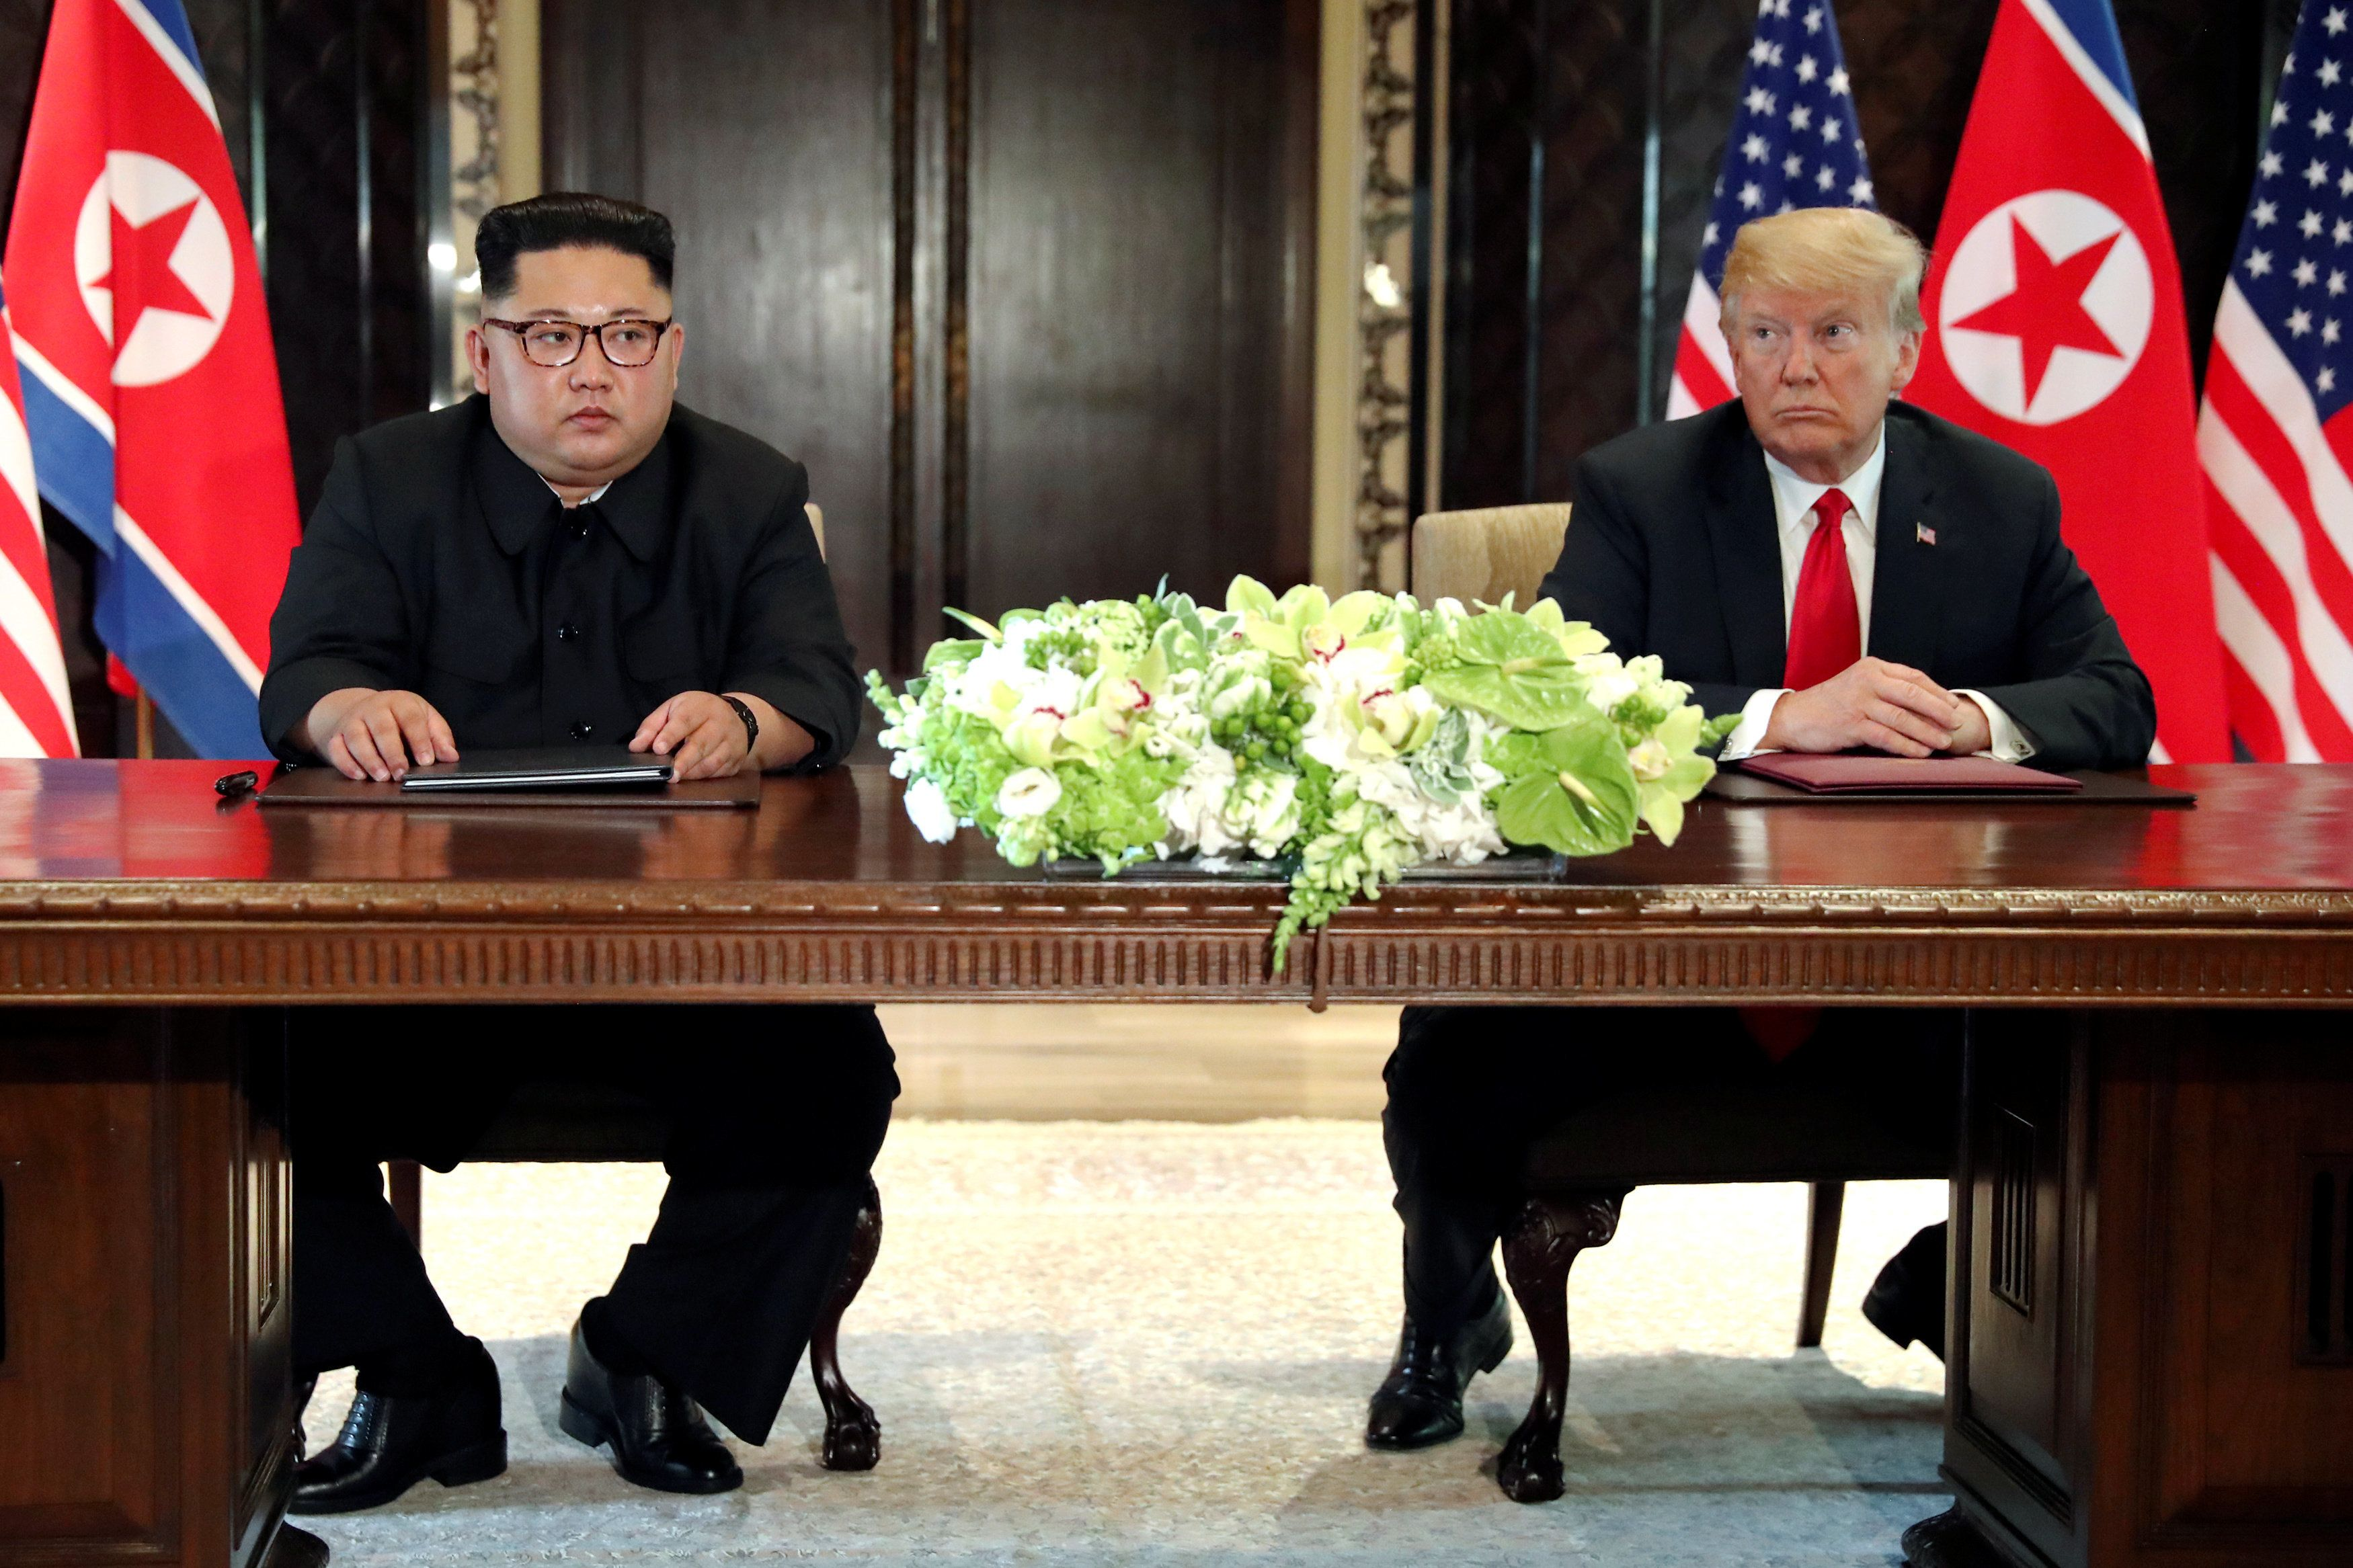 U.S. President Donald Trump and North Korea's leader Kim Jong Un hold a signing ceremony at the conclusion of their summit at the Capella Hotel on the resort island of Sentosa, Singapore June 12, 2018. Picture taken June 12, 2018. REUTERS/Jonathan Ernst